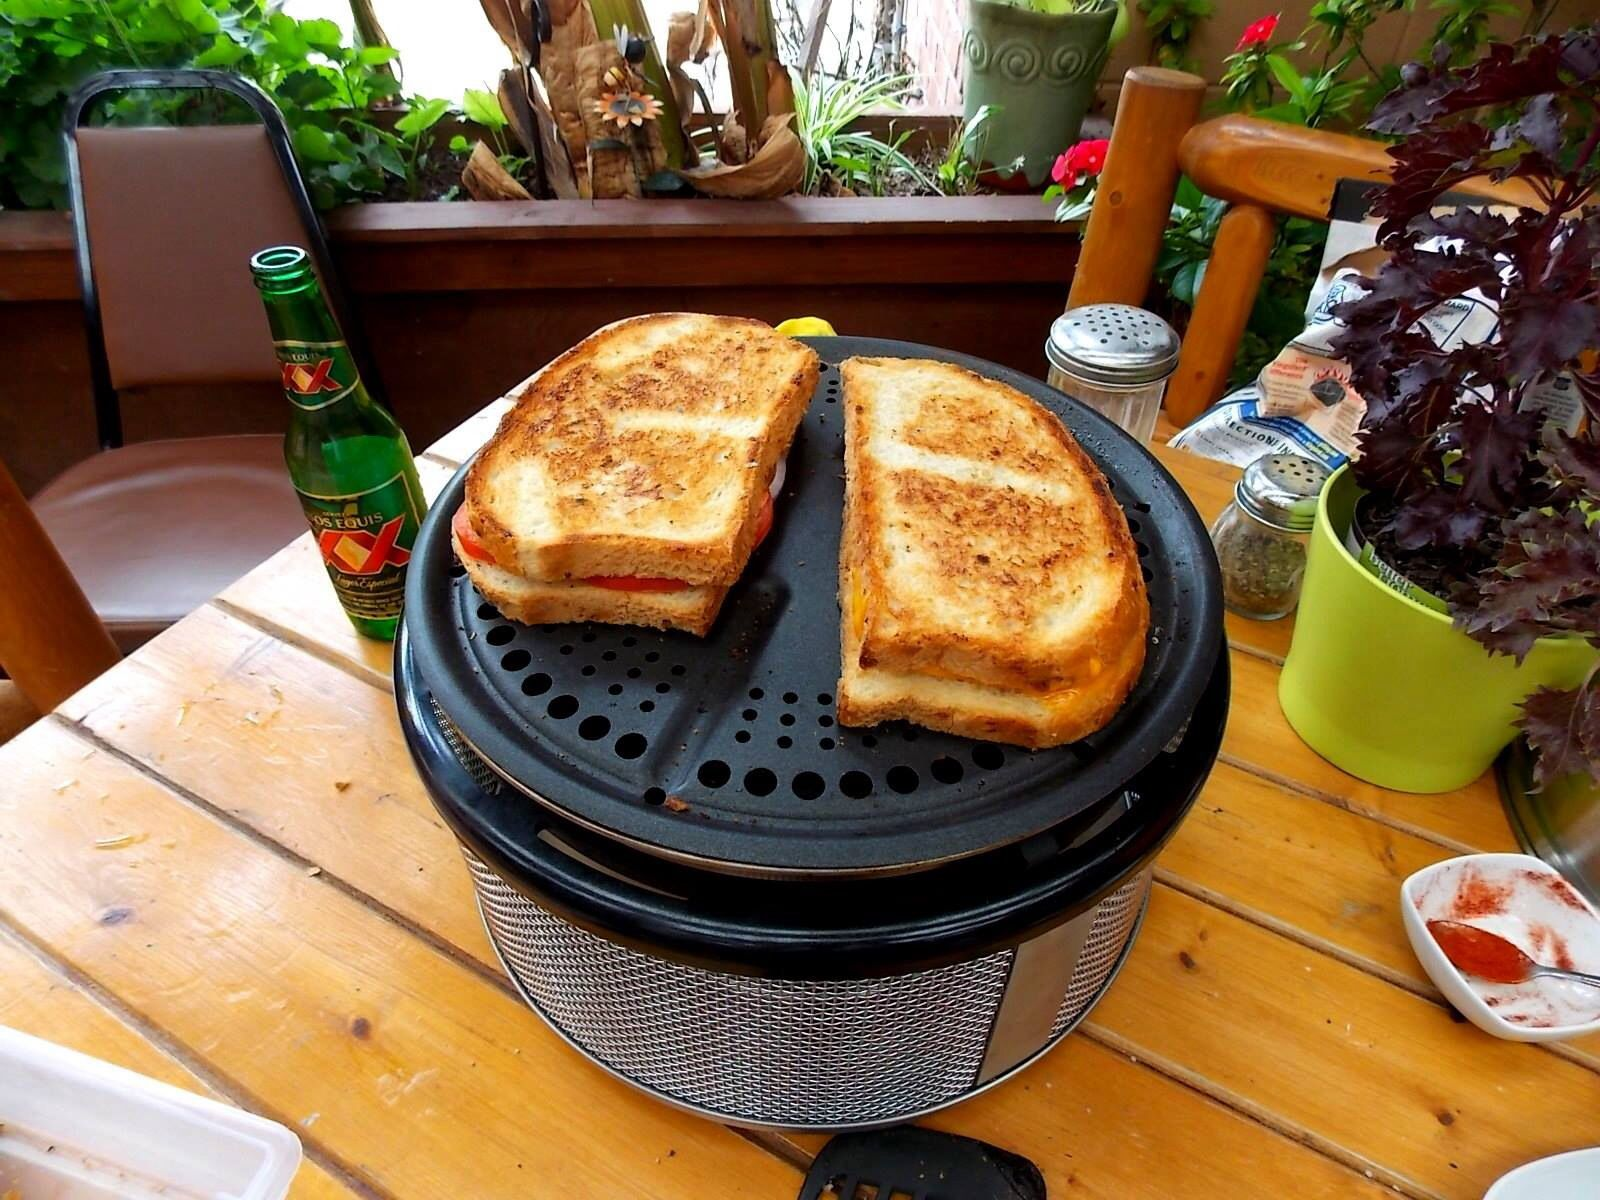 grilled sandwich directly on the cobb grill grid quick and easy let the children help learn. Black Bedroom Furniture Sets. Home Design Ideas